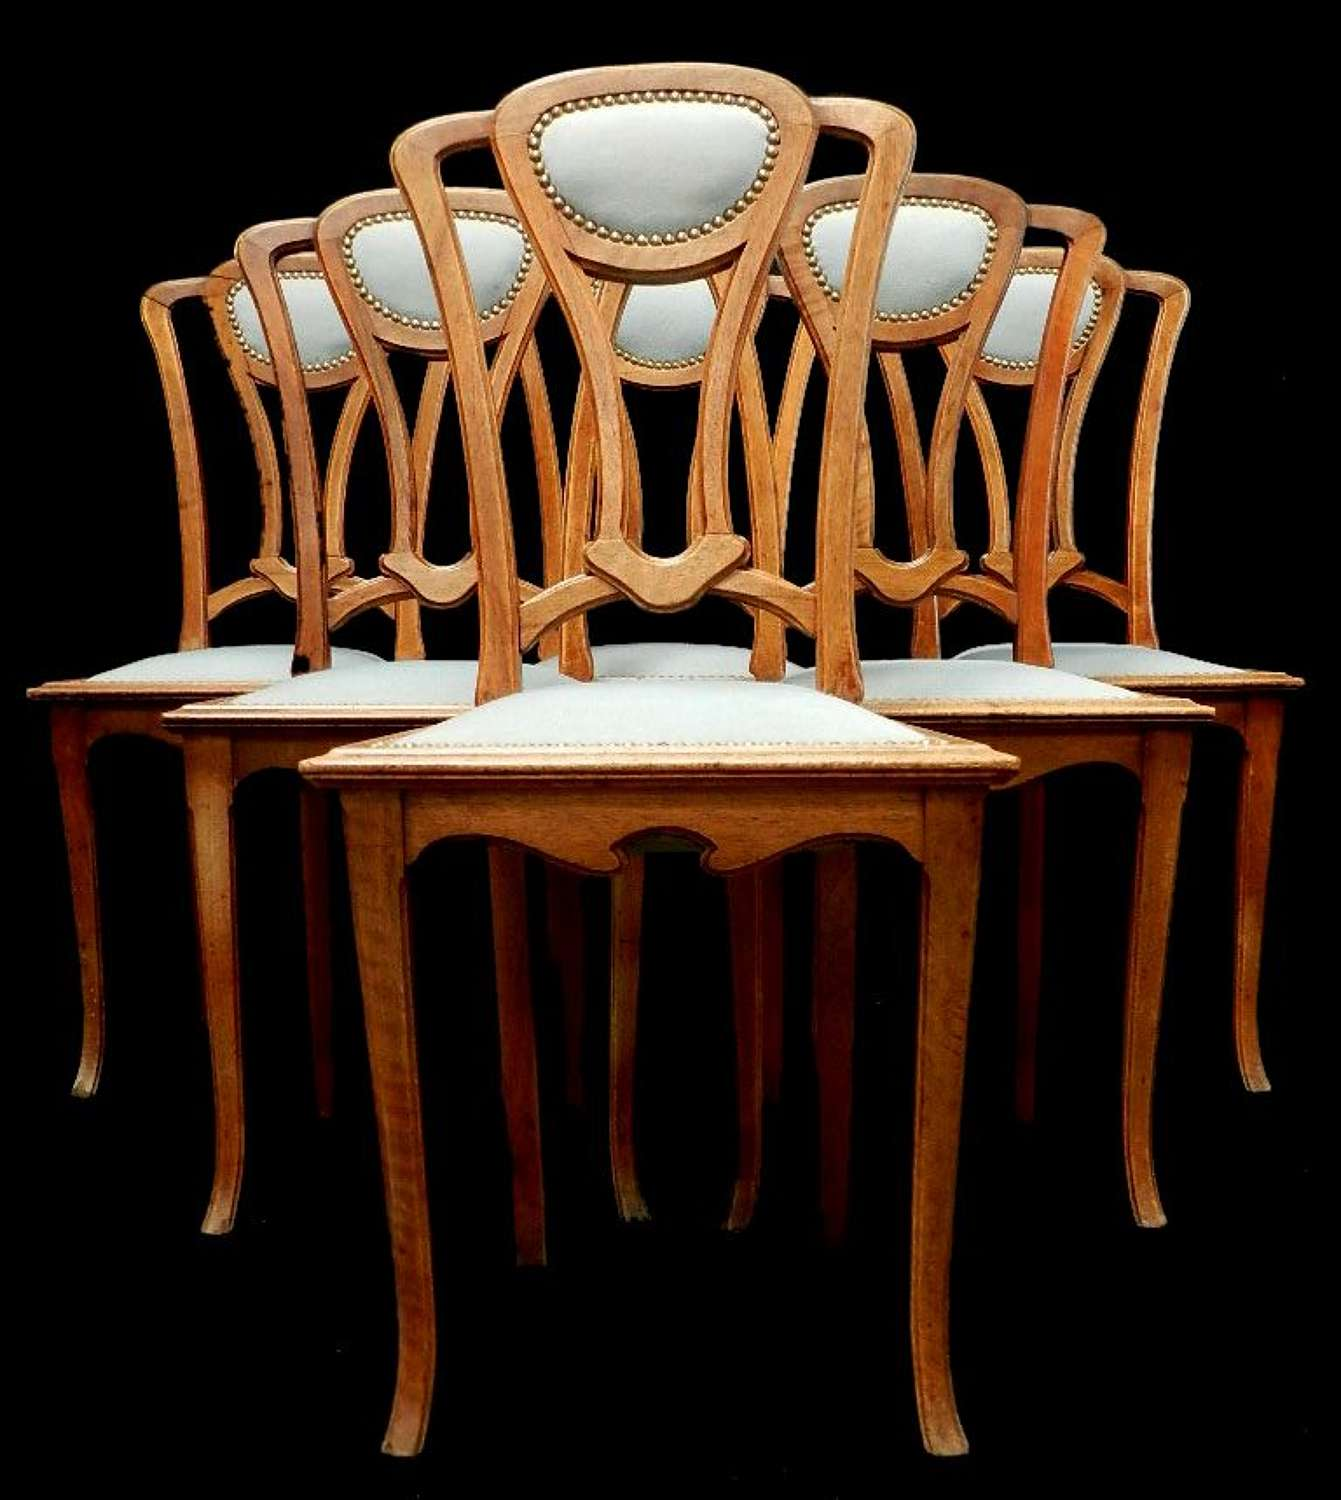 Set of 6 French Art Nouveau Dining Chairs School of Majorelle